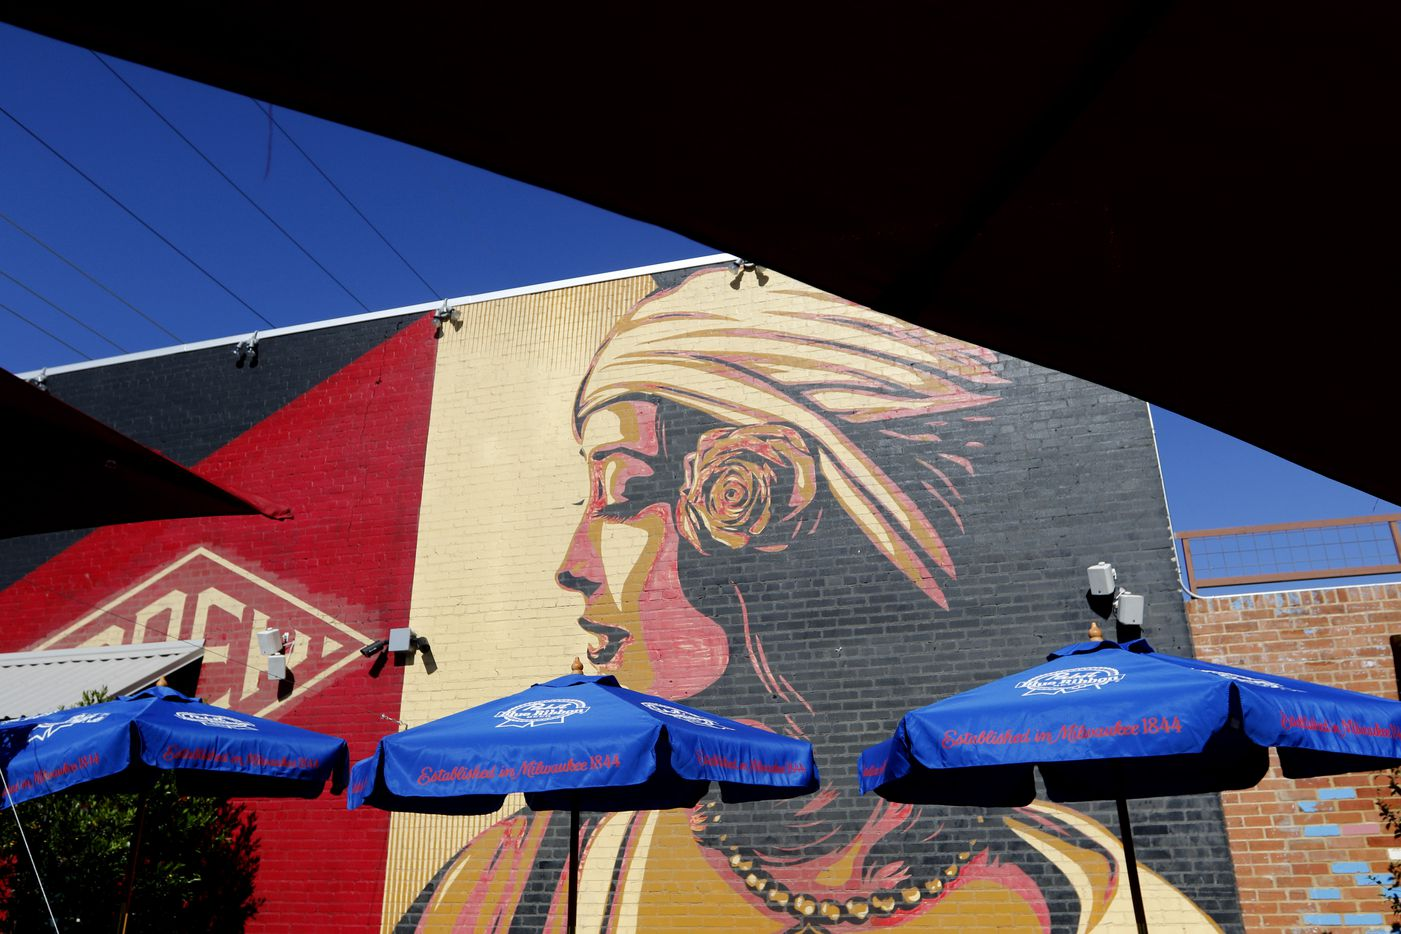 A mural, painted by graffiti artist Shepard Fairey, on the east side of the Off-Site Kitchen building in Trinity Groves